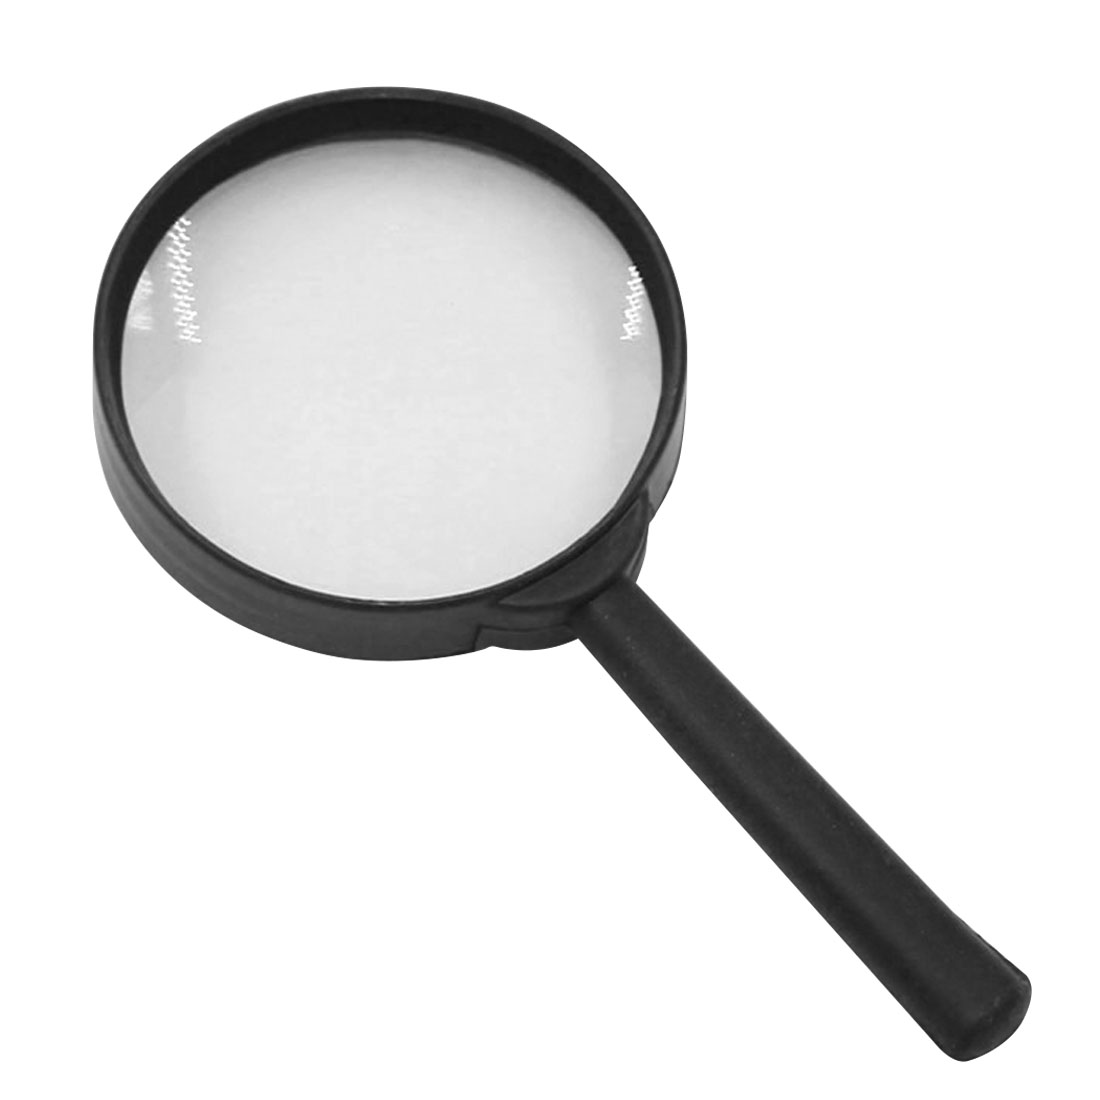 Magnifier 60mm Hand Held 3X Magnifying Loupe Reading Glass Lens